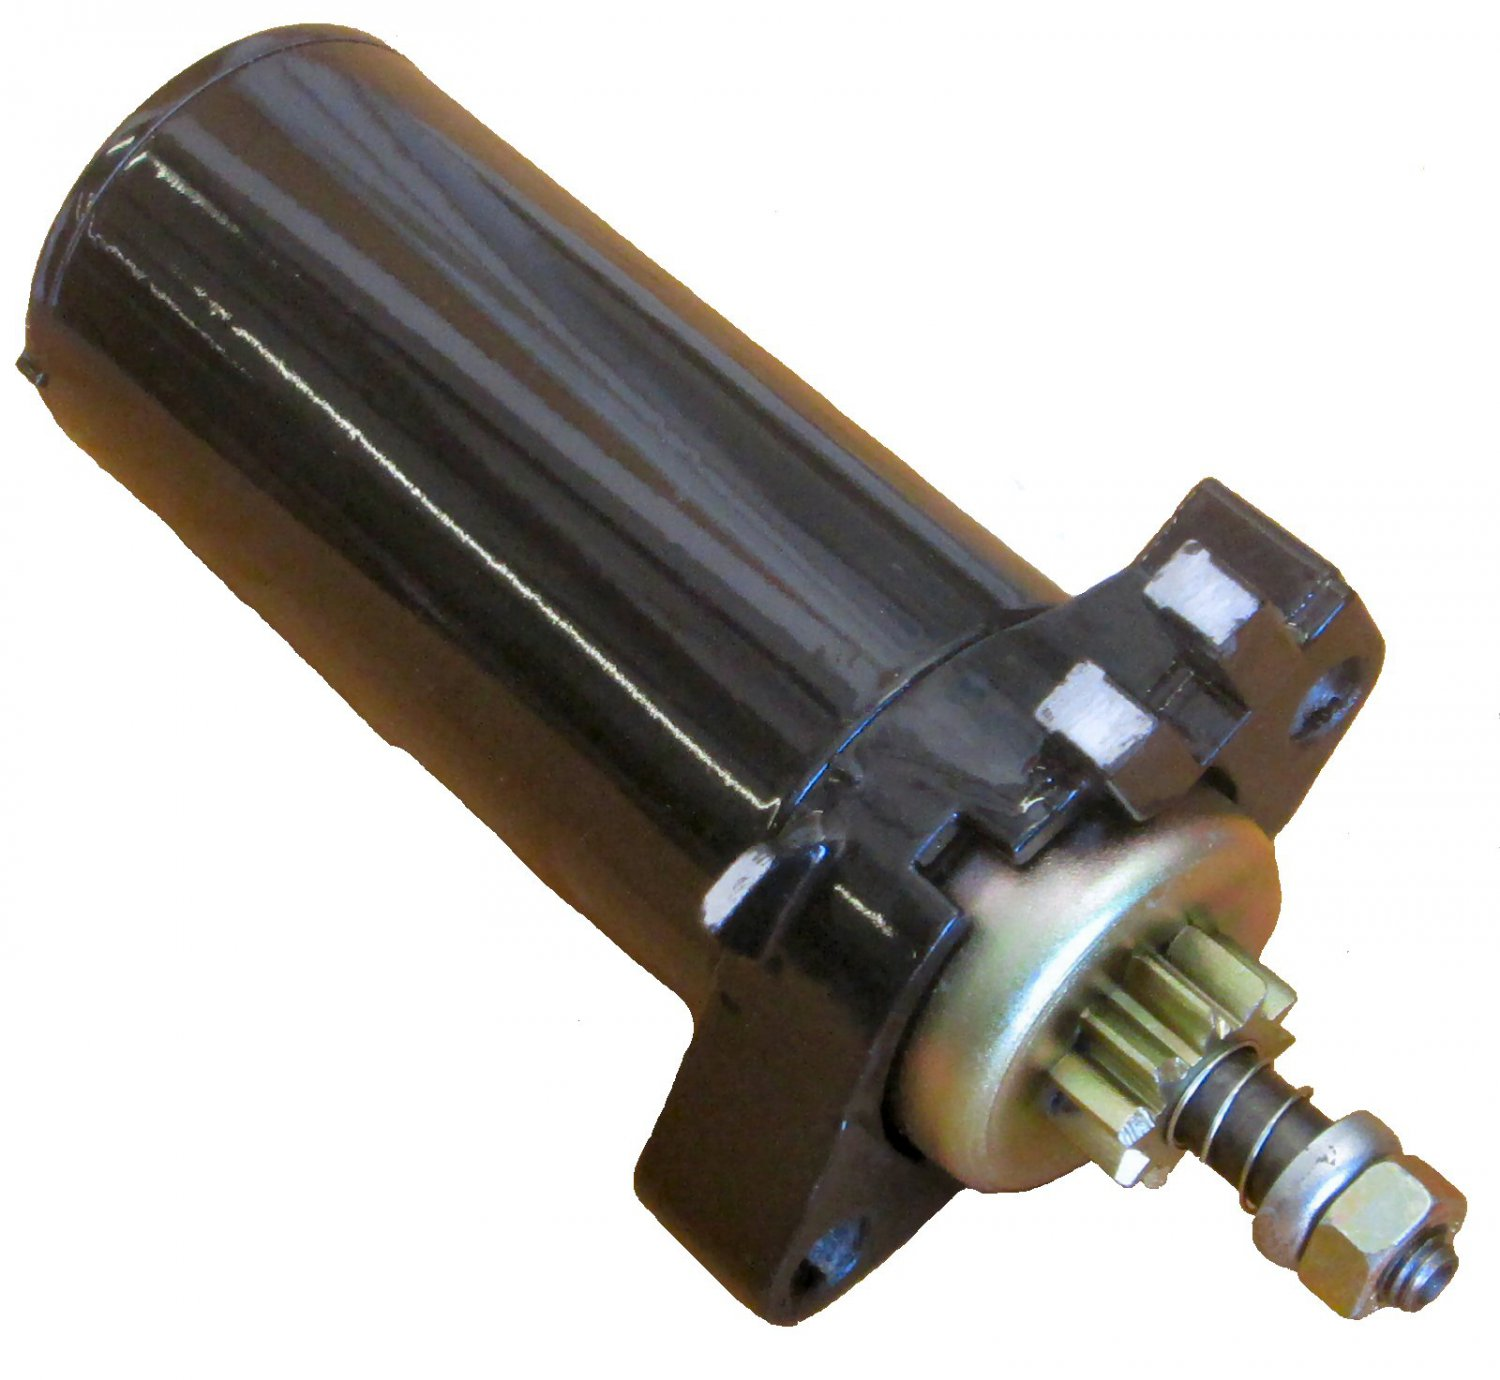 Outboard Starter for Some Johnson Evinrude 9.9 to 15 HP 1993 and Up (TM5617)